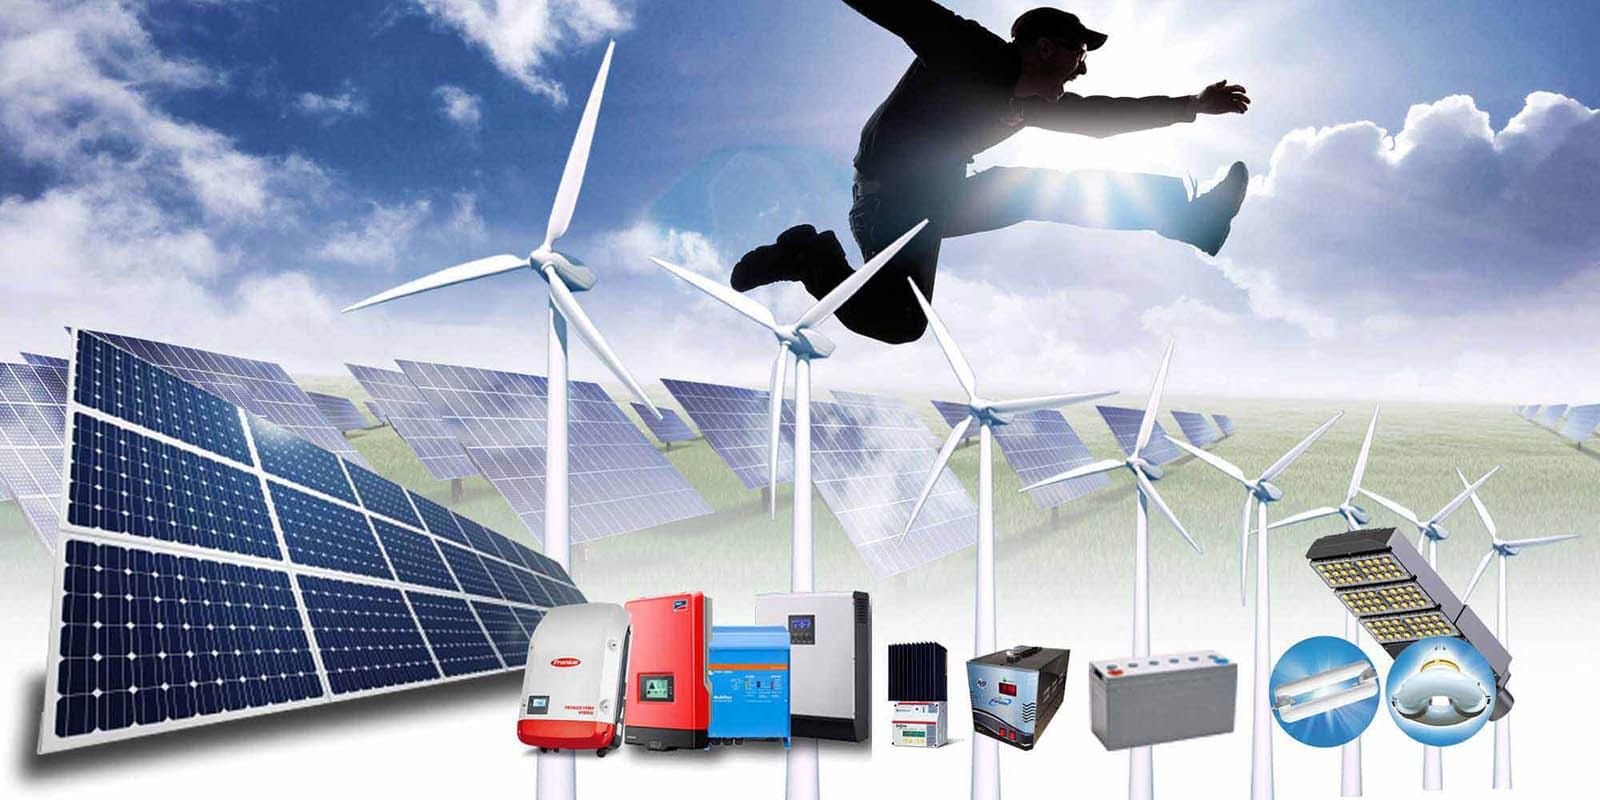 solar products background image